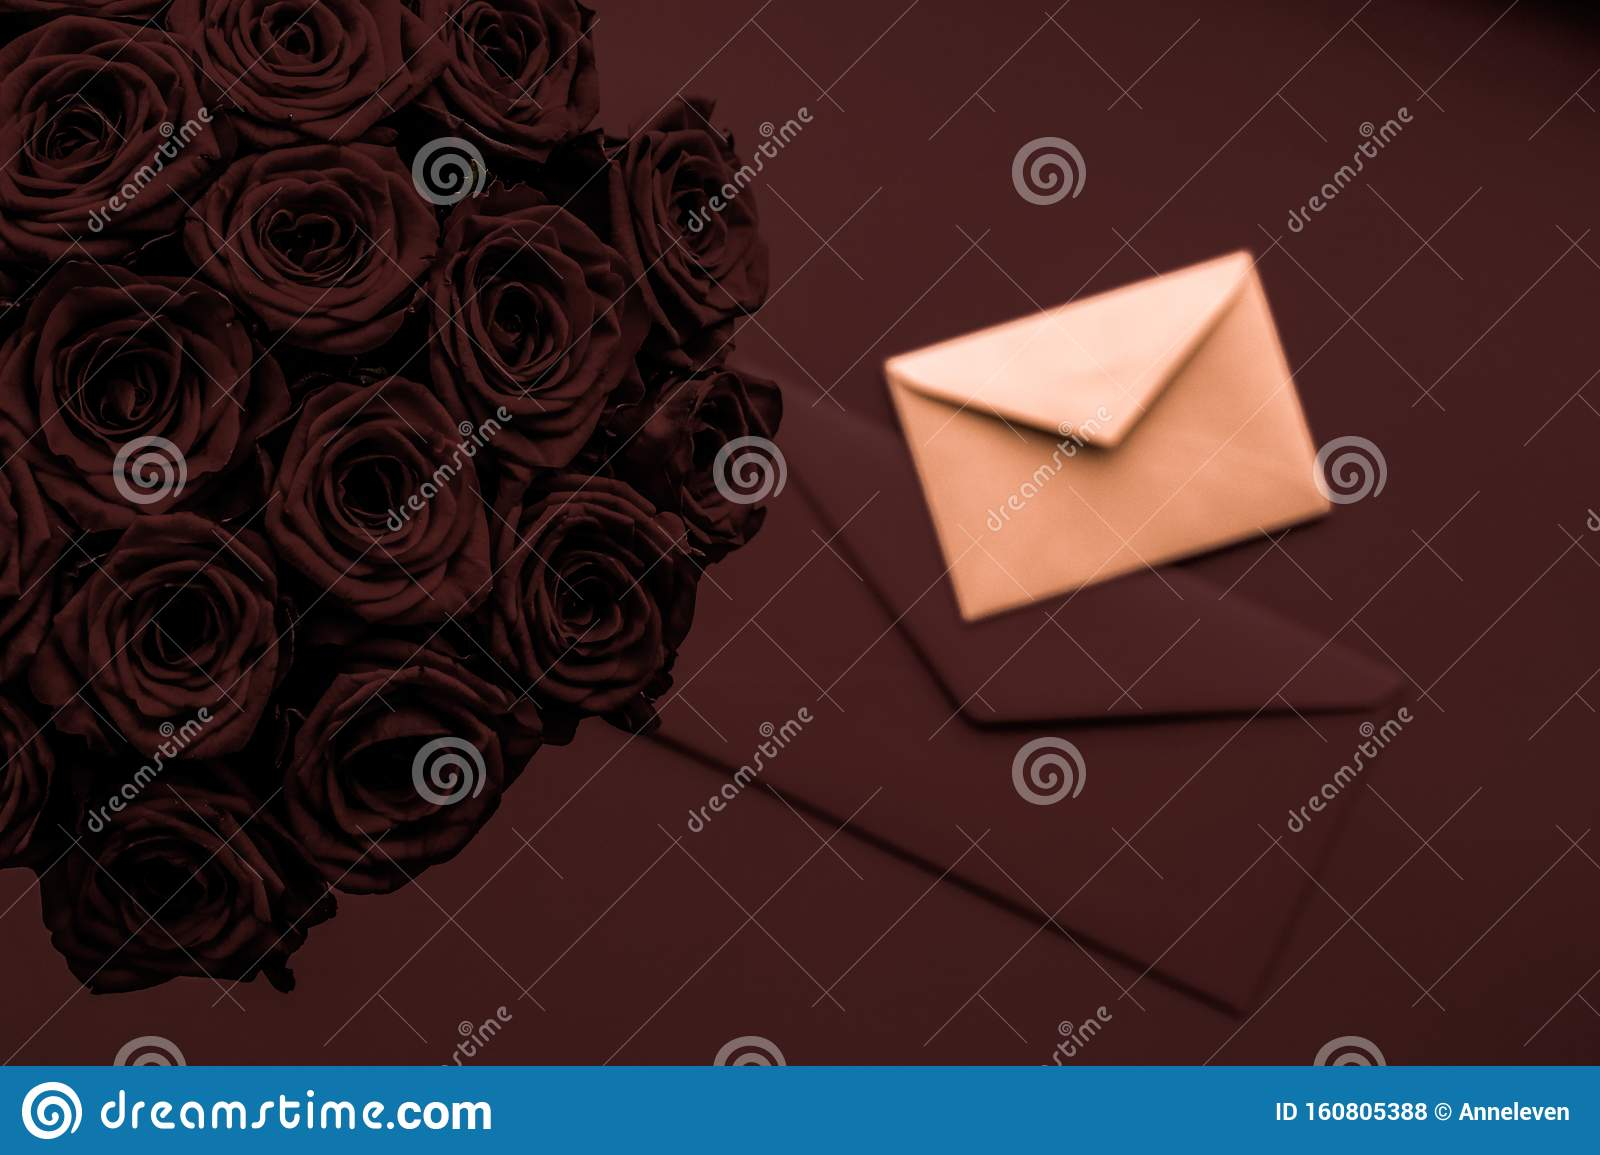 Love Letter And Flowers Delivery On Valentines Day Luxury Bouquet Of Roses And Card On Chocolate Background For Romantic Holiday Stock Photo Image Of Letter Love 160805388